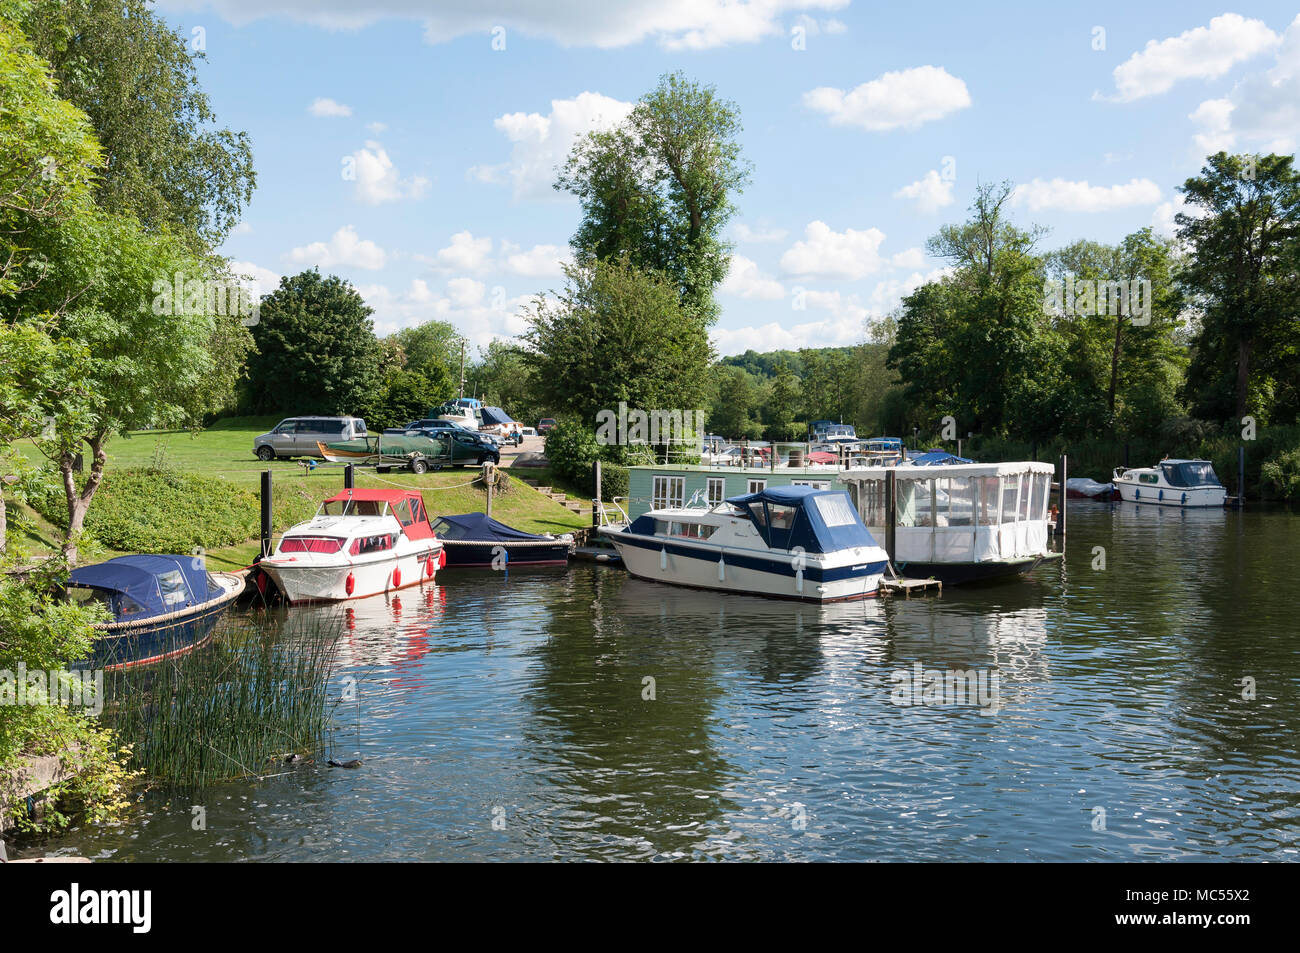 Boats moored at Hambleden Lock, Mill End, Buckinghamshire, England, United Kingdom - Stock Image